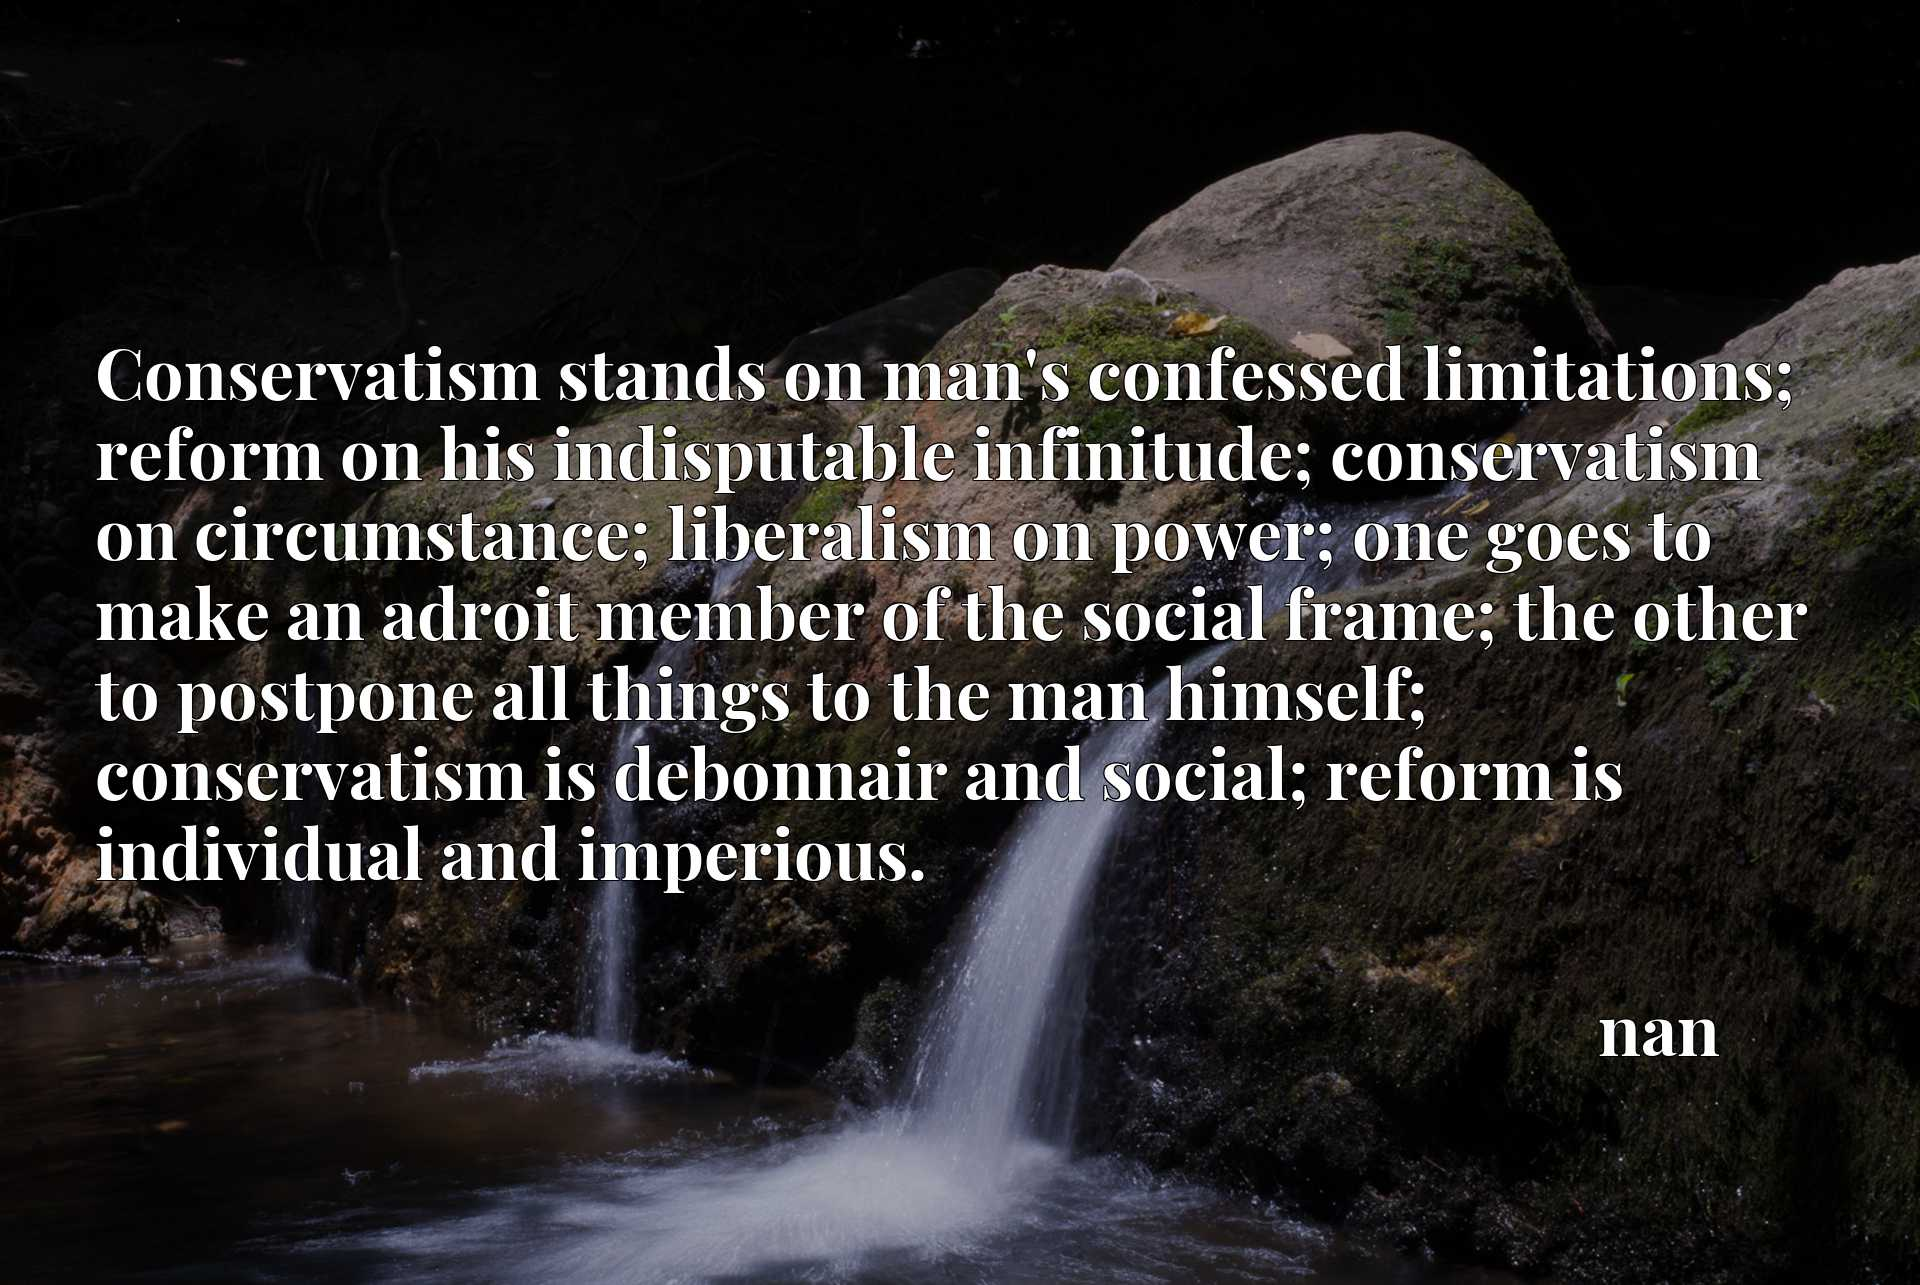 Conservatism stands on man's confessed limitations; reform on his indisputable infinitude; conservatism on circumstance; liberalism on power; one goes to make an adroit member of the social frame; the other to postpone all things to the man himself; conservatism is debonnair and social; reform is individual and imperious.